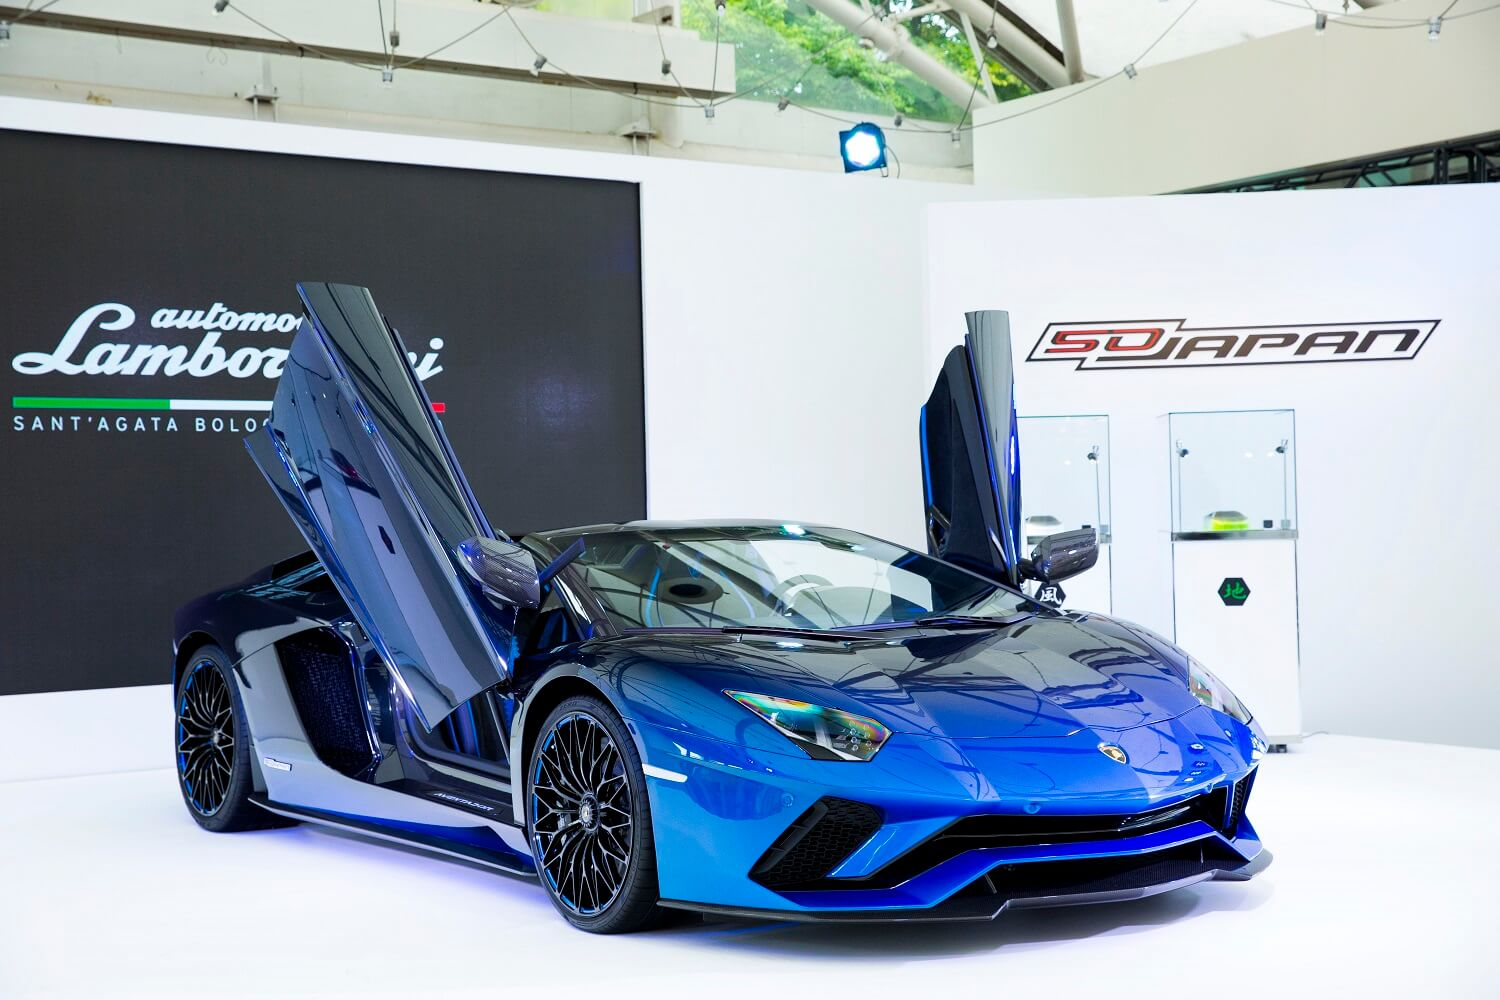 Bosch10 - Aventador-S-Roadtser-50th-Anniversary-Japan